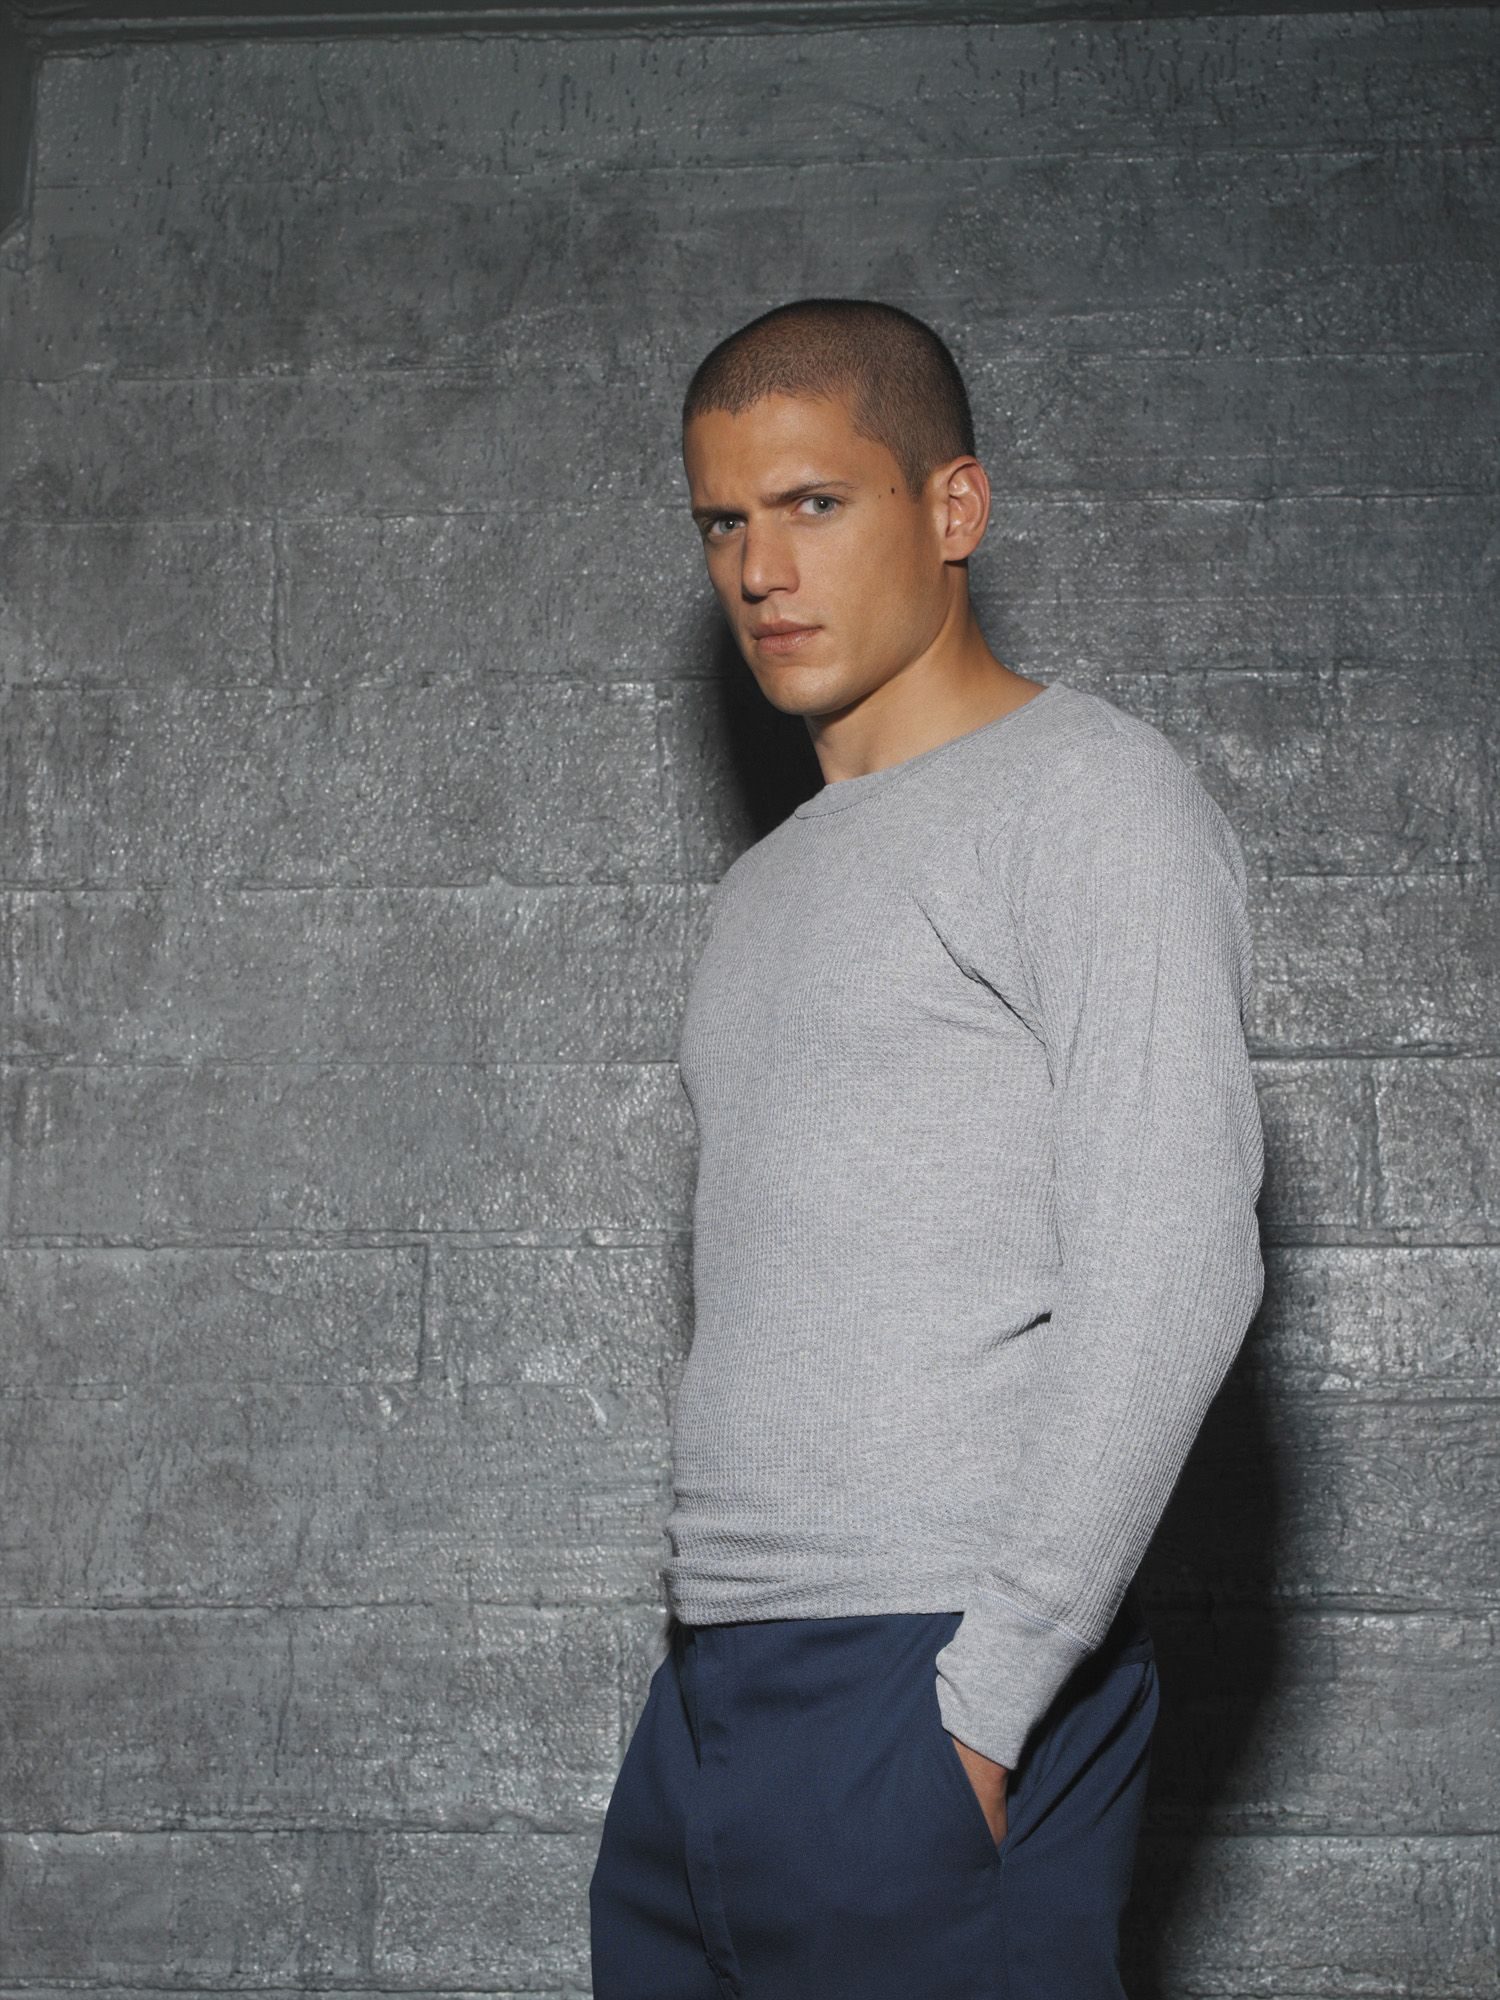 wentworth miller wifewentworth miller 2016, wentworth miller twitter, wentworth miller vk, wentworth miller фильмы, wentworth miller инстаграм, wentworth miller films, wentworth miller gif, wentworth miller wikipedia, wentworth miller family, wentworth miller interview, wentworth miller flash, wentworth miller wife, wentworth miller resident evil, wentworth miller personal life, wentworth miller imdb, wentworth miller height, wentworth miller photo, wentworth miller wiki, wentworth miller личная жизнь, wentworth miller legends of tomorrow